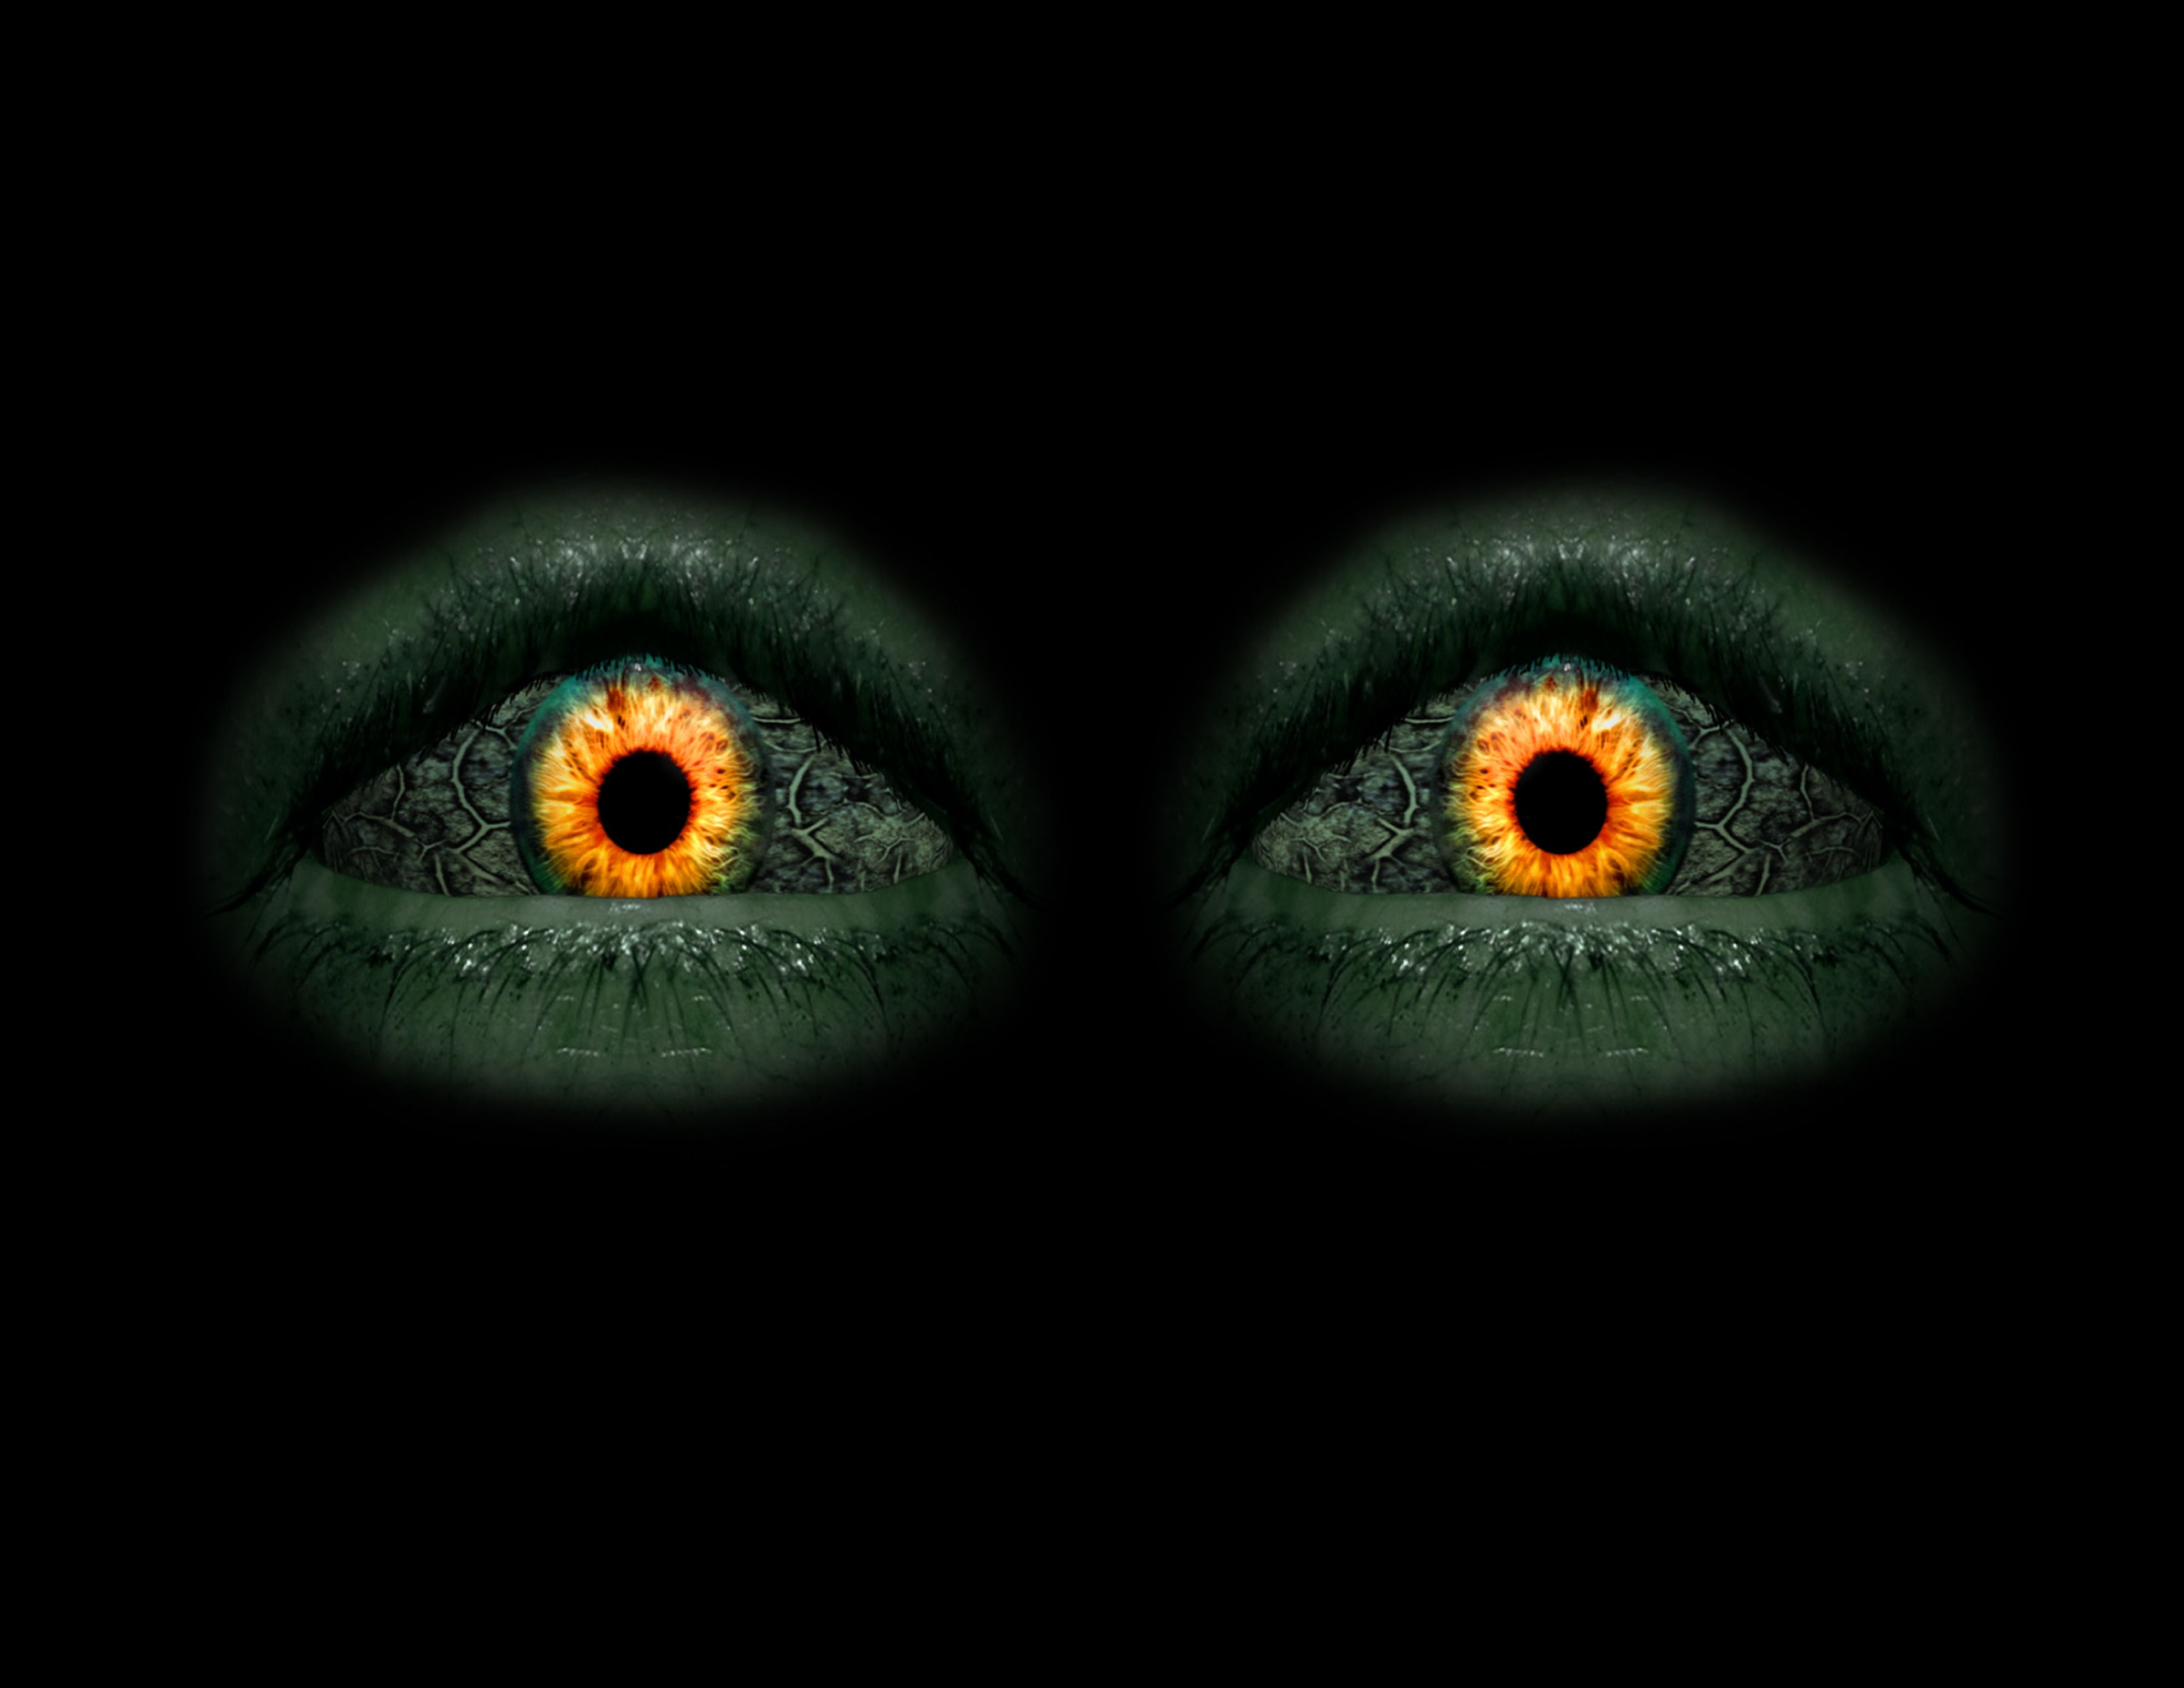 Ok, if these eyes were starring at me in the dark, I